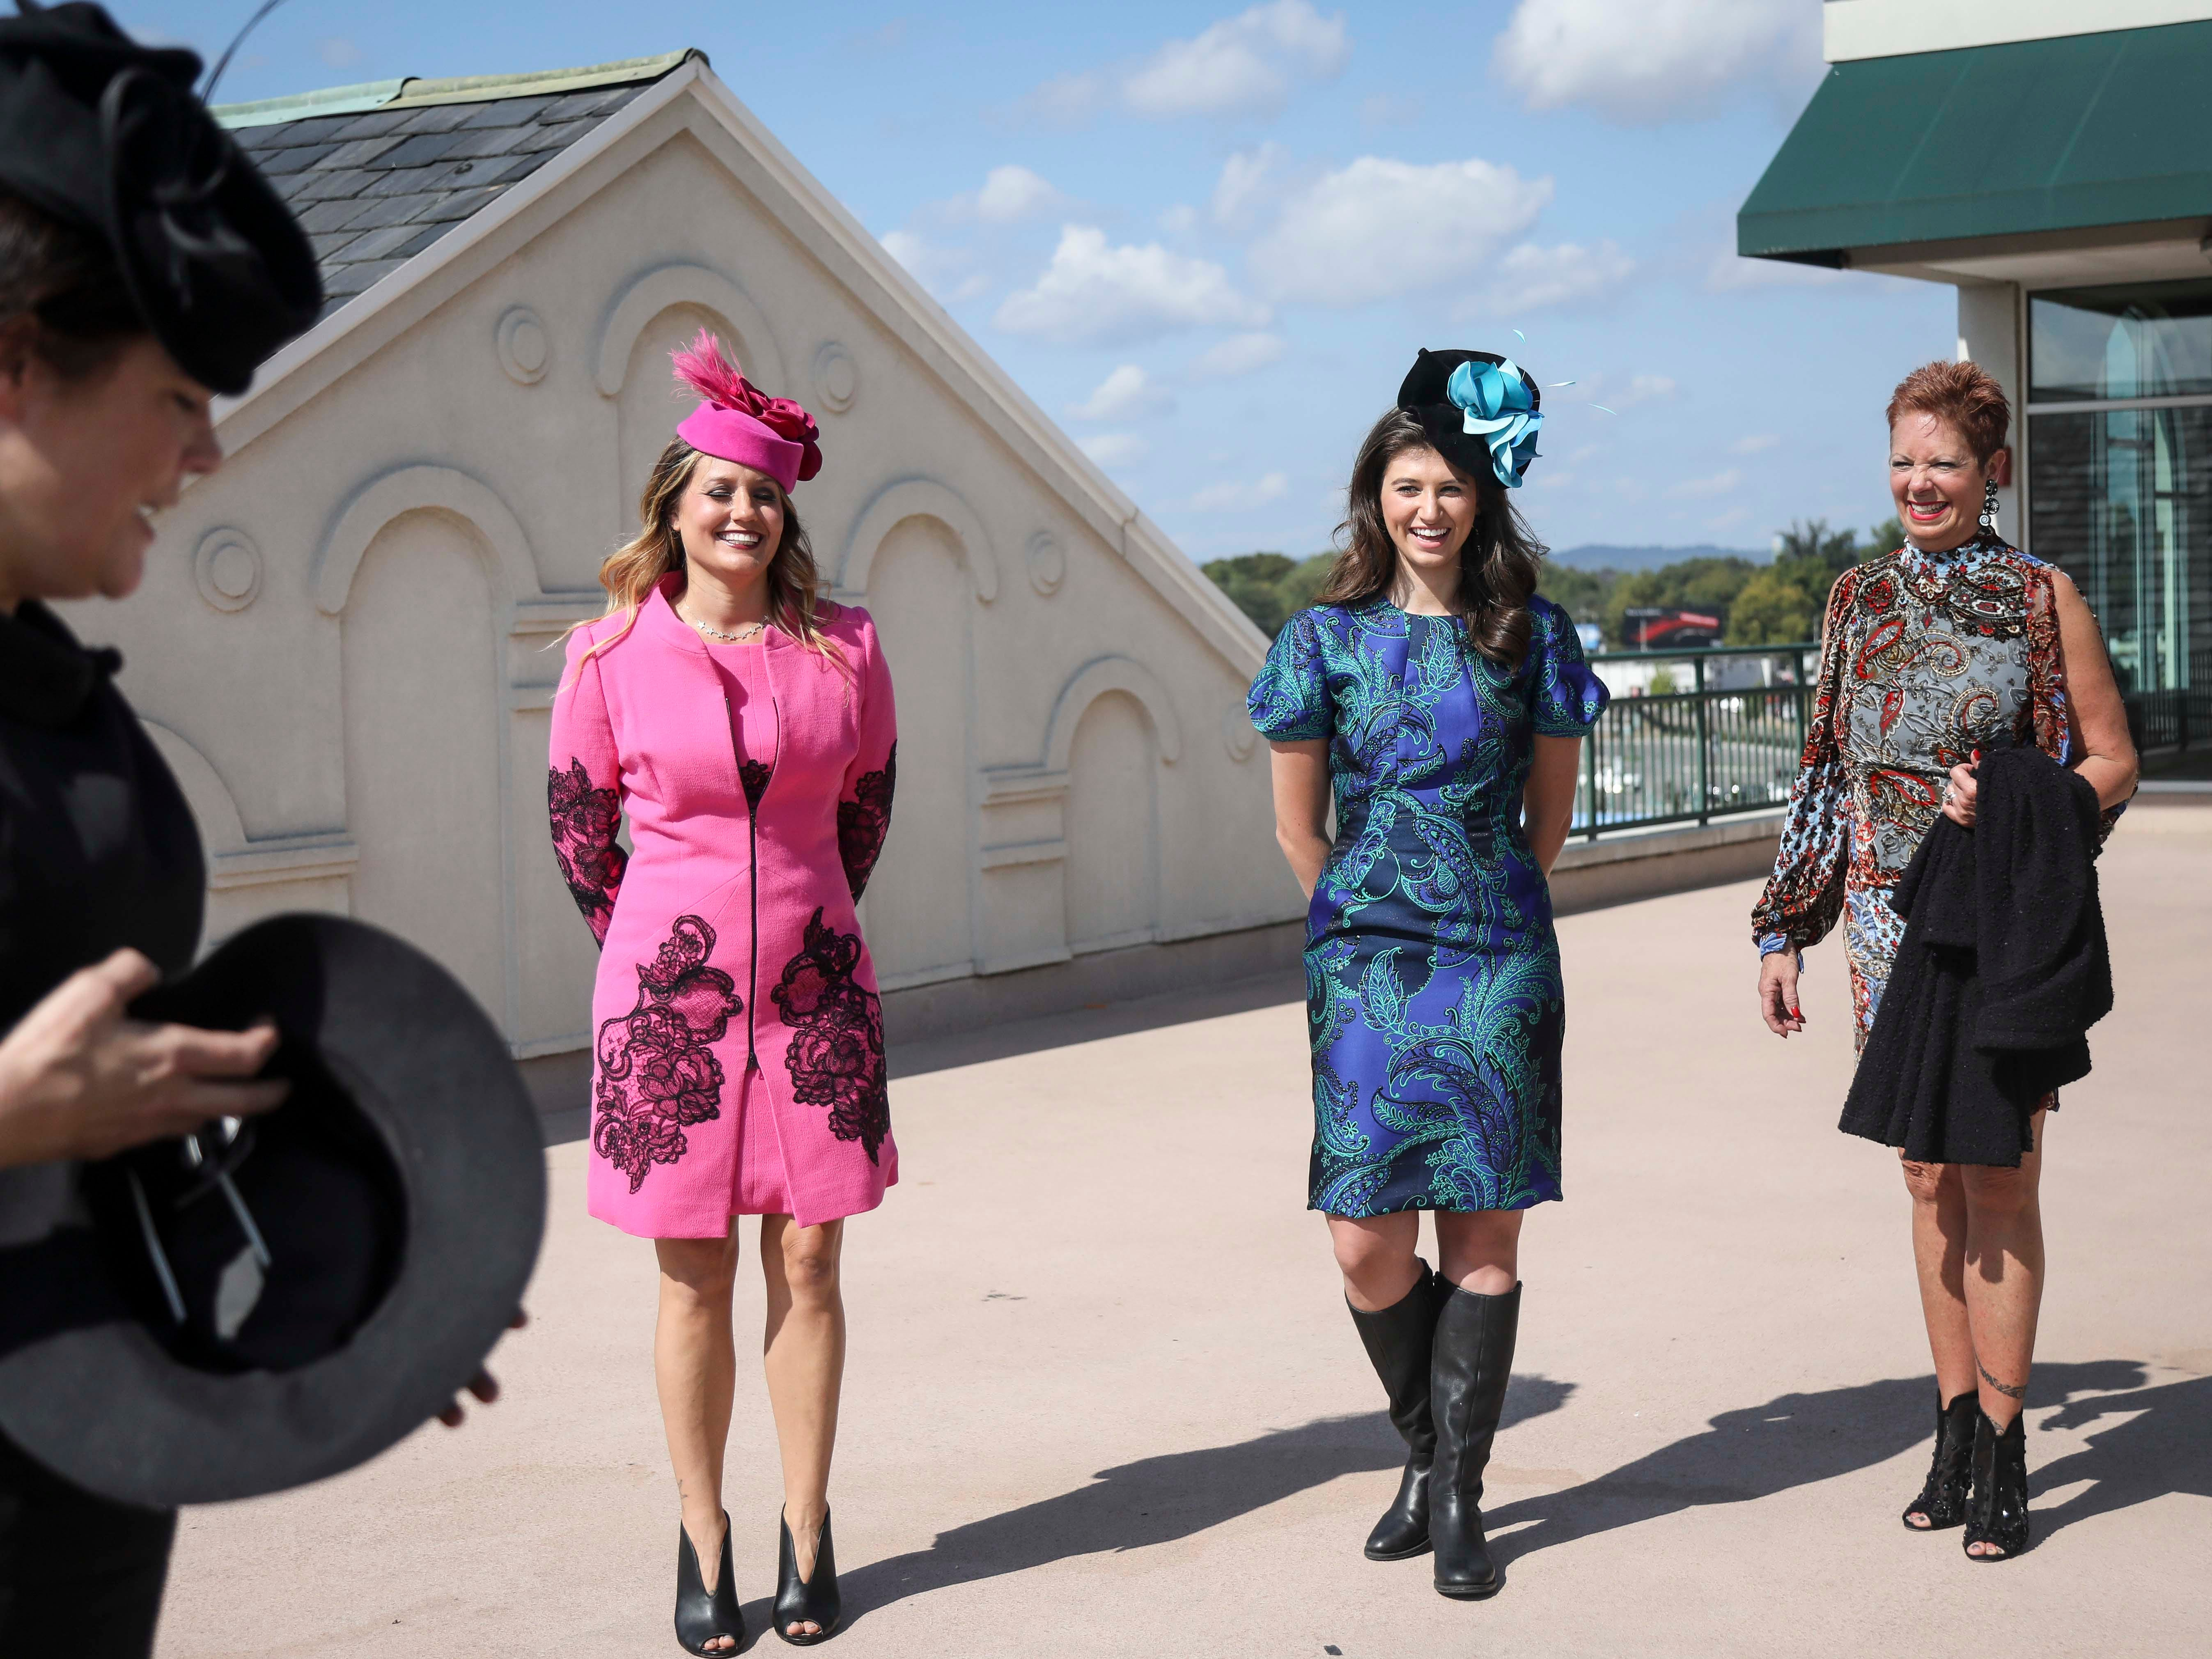 Christine Moore, far left, finds a hat for Patty Ethington, far right, to try on while Candice Isa and Katie Bouchard don dresses made by Lourdes Chavez and hats made by Christine Moore, track fashion expert and owner of Cam Hats, during an interview with the Courier Journal ahead of the Breeders Cup (November 3) at Churchill Downs on Wednesday, October 3, 2018.